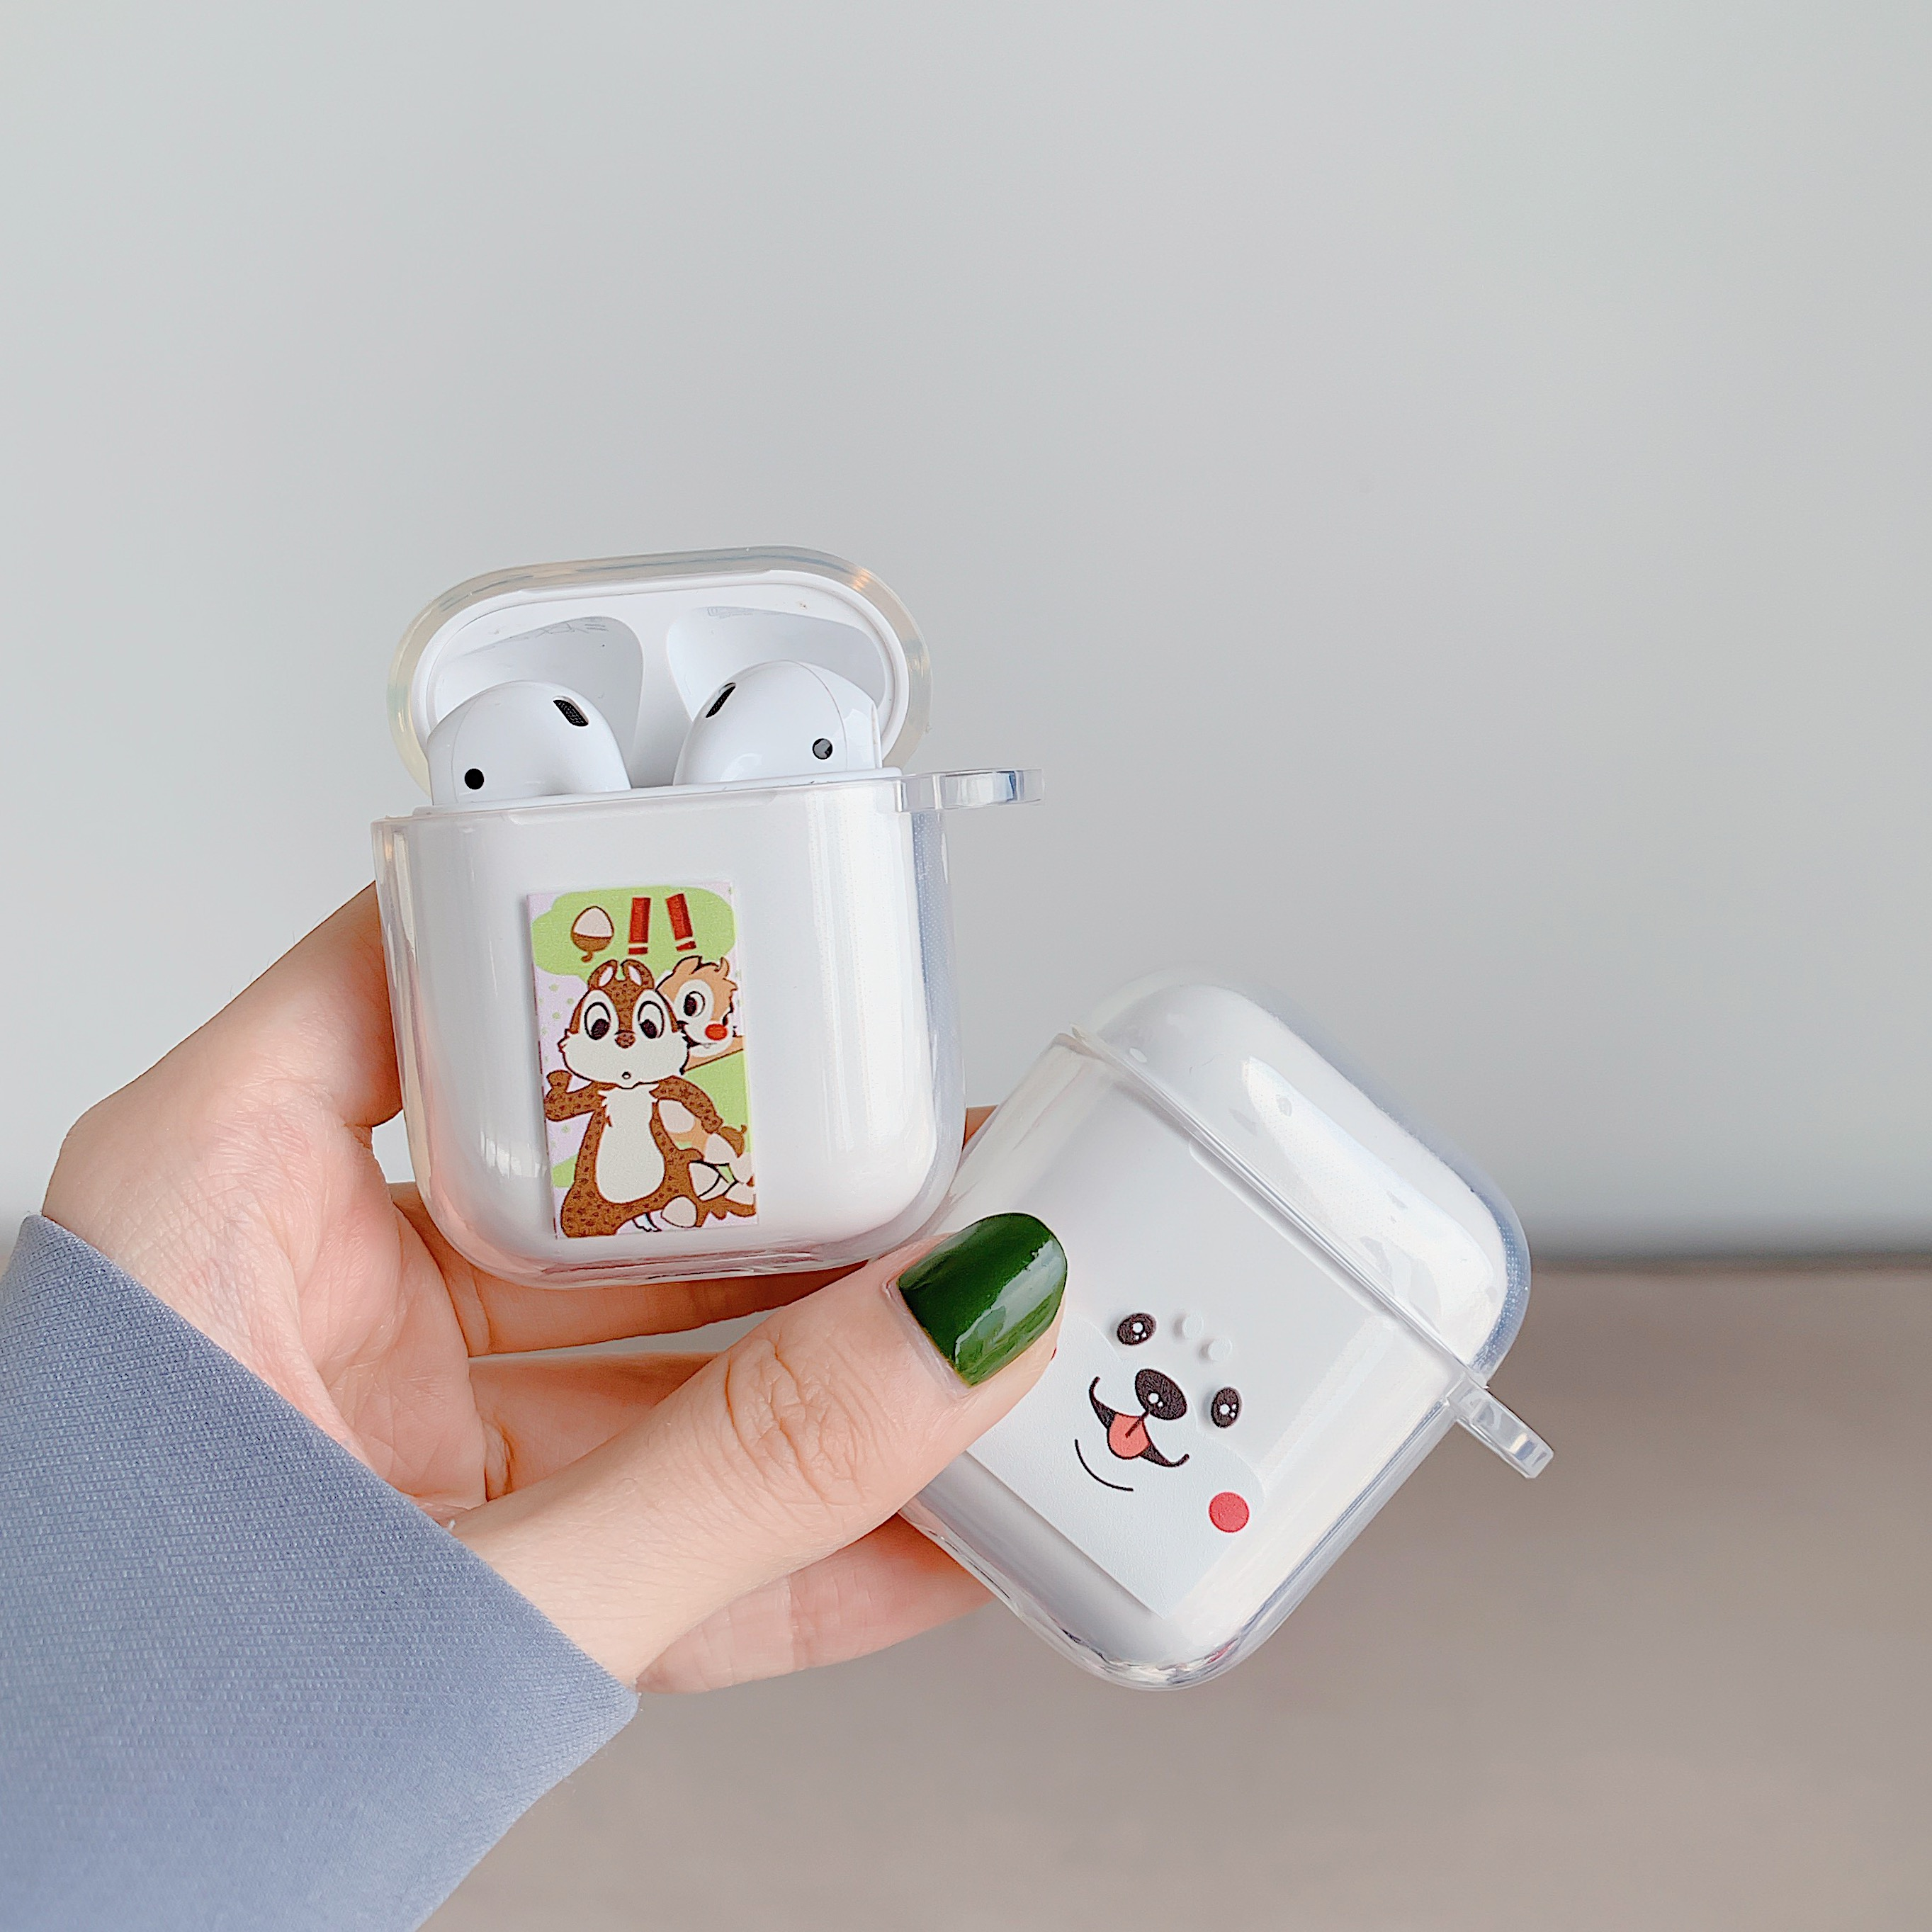 Cartoon Animals yoghourt egg Wireless Bluetooth Earphone Cute Case For Apple AirPods 2 1 Silicone Charging in Earphone Accessories from Consumer Electronics